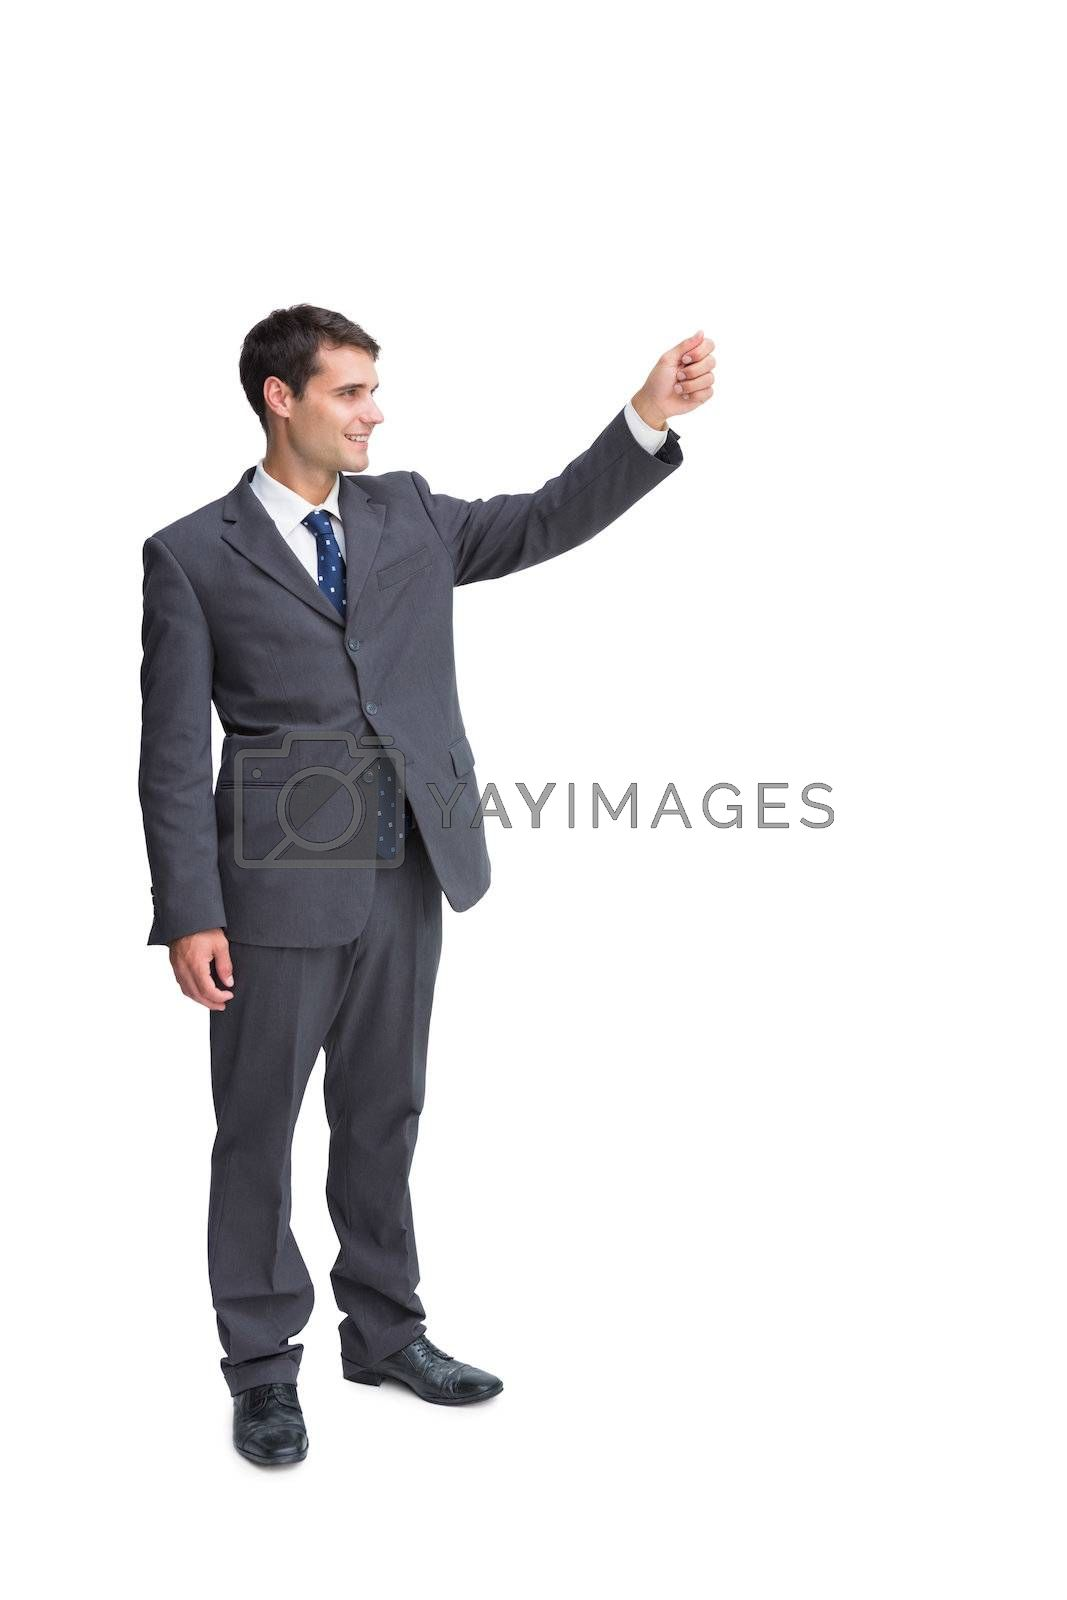 Smiling businessman holding something up in the air by Wavebreakmedia